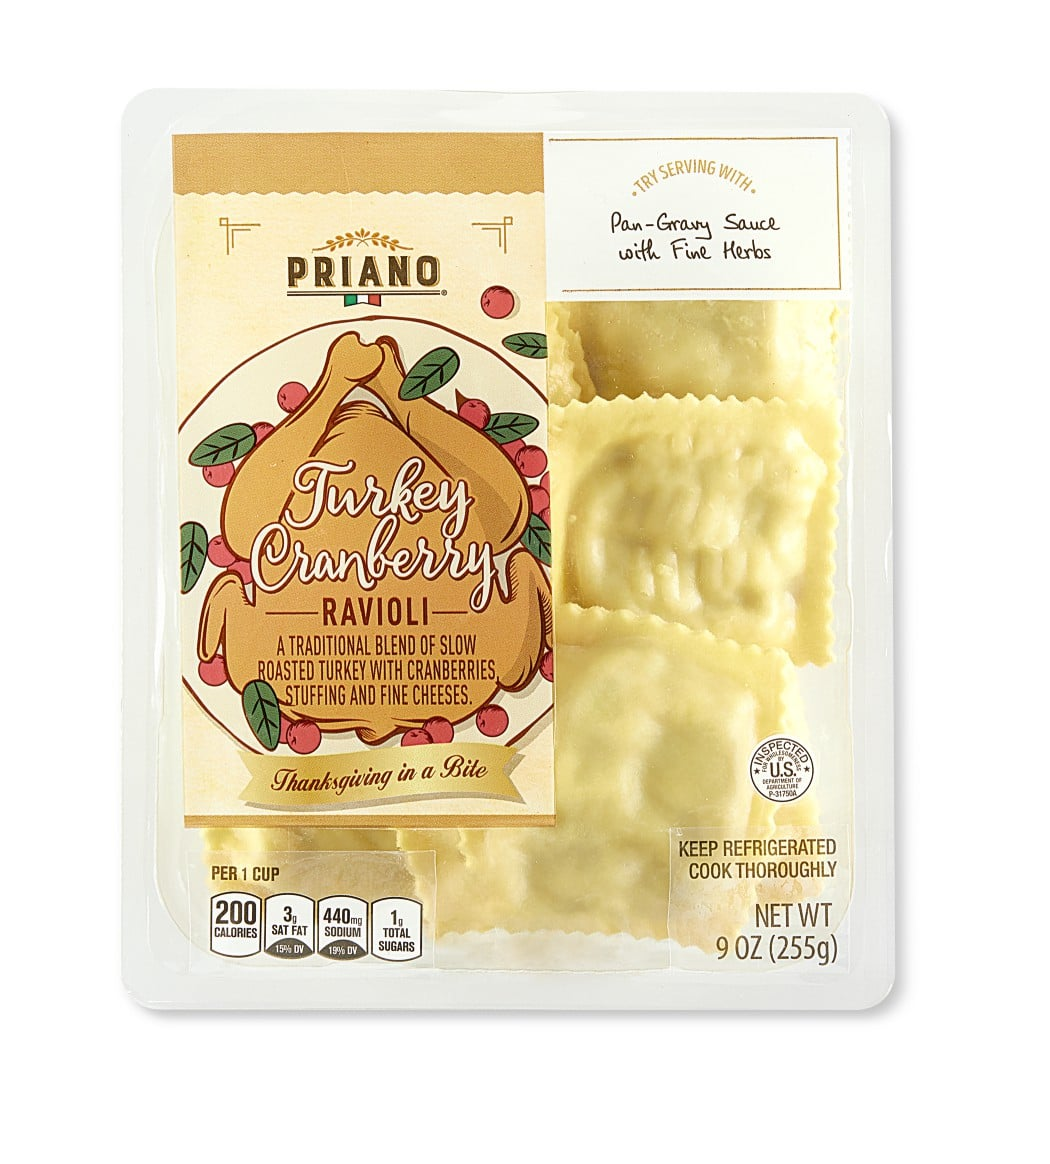 Aldi Thanksgiving ravioli